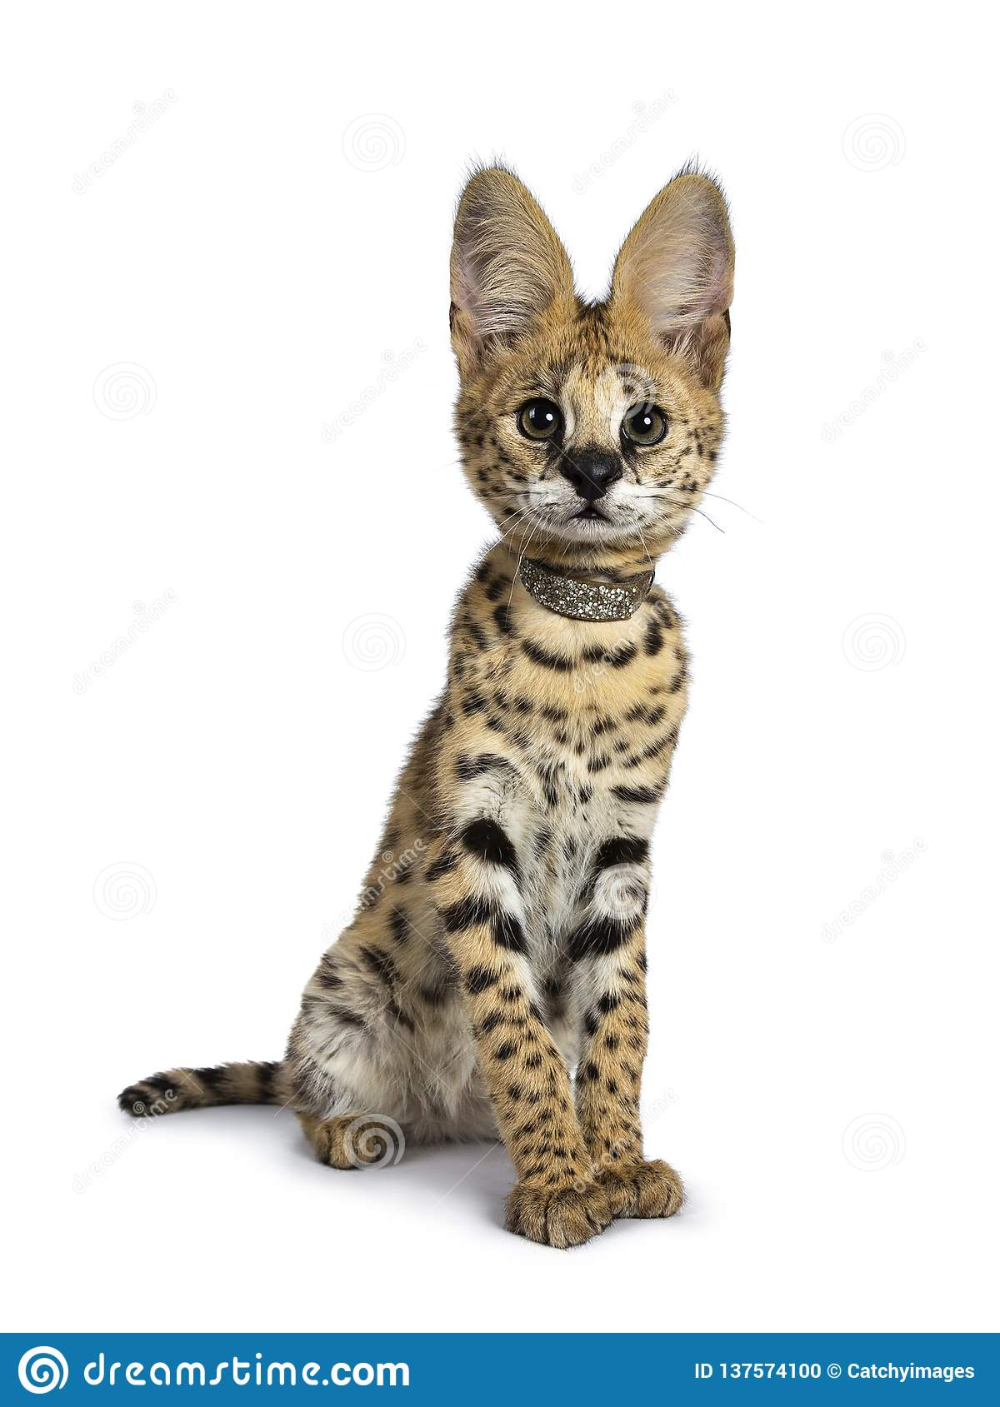 Pin By Maksim Mojsejchenko On Dream Pets In 2020 African Serval Cat Serval Cats Cats And Kittens